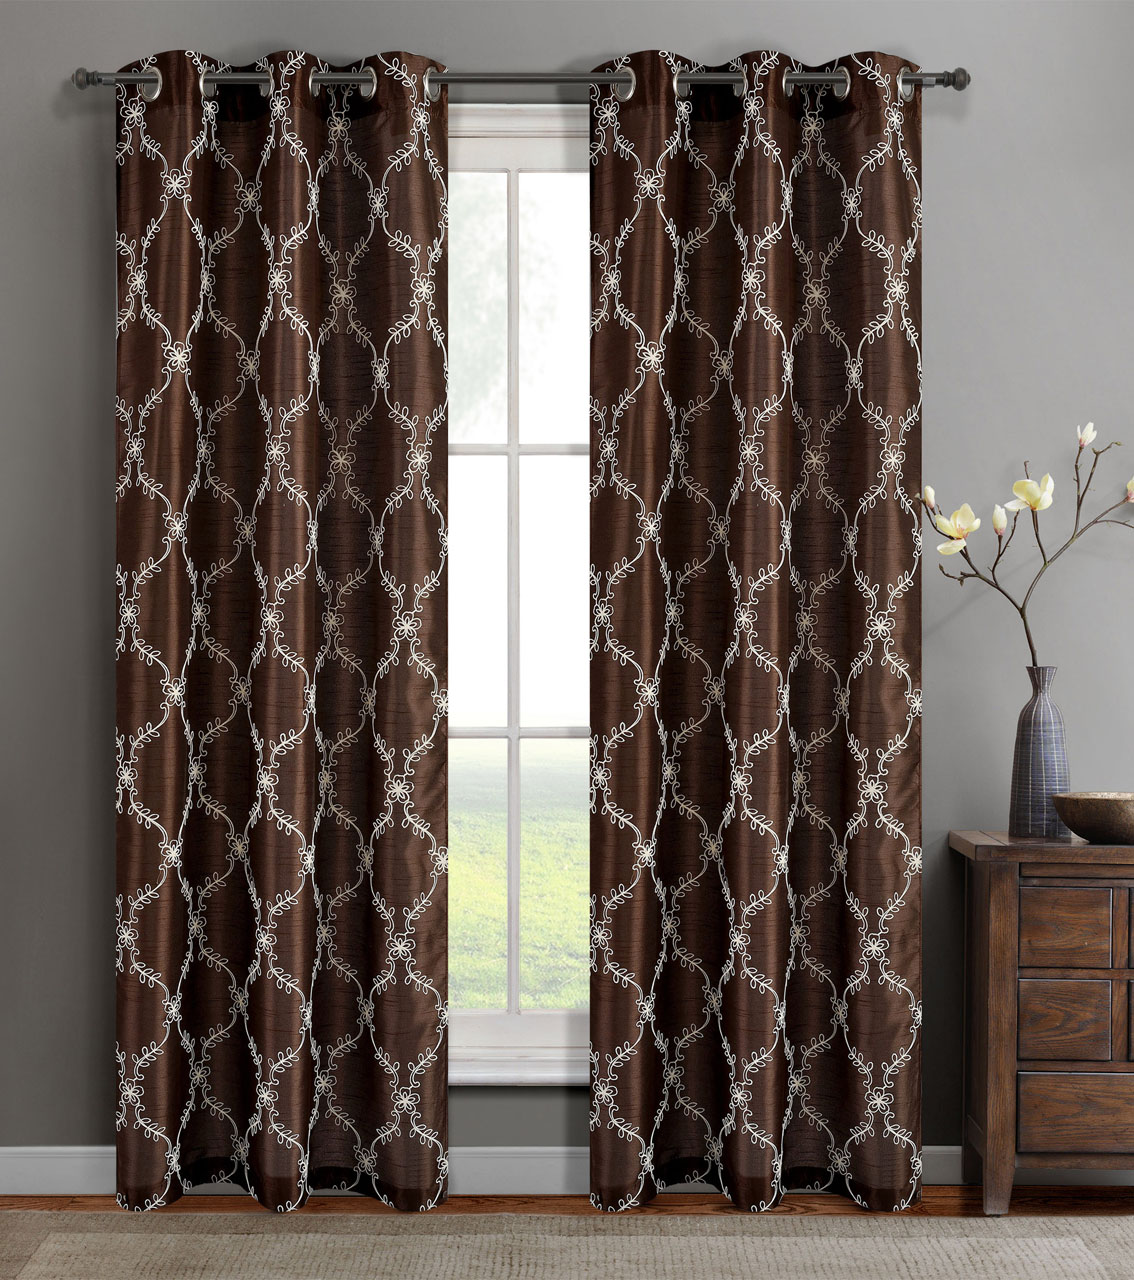 panel wide hampton bahari window treatments house curtains of silk curtain textured blackout single pdp panels extra faux